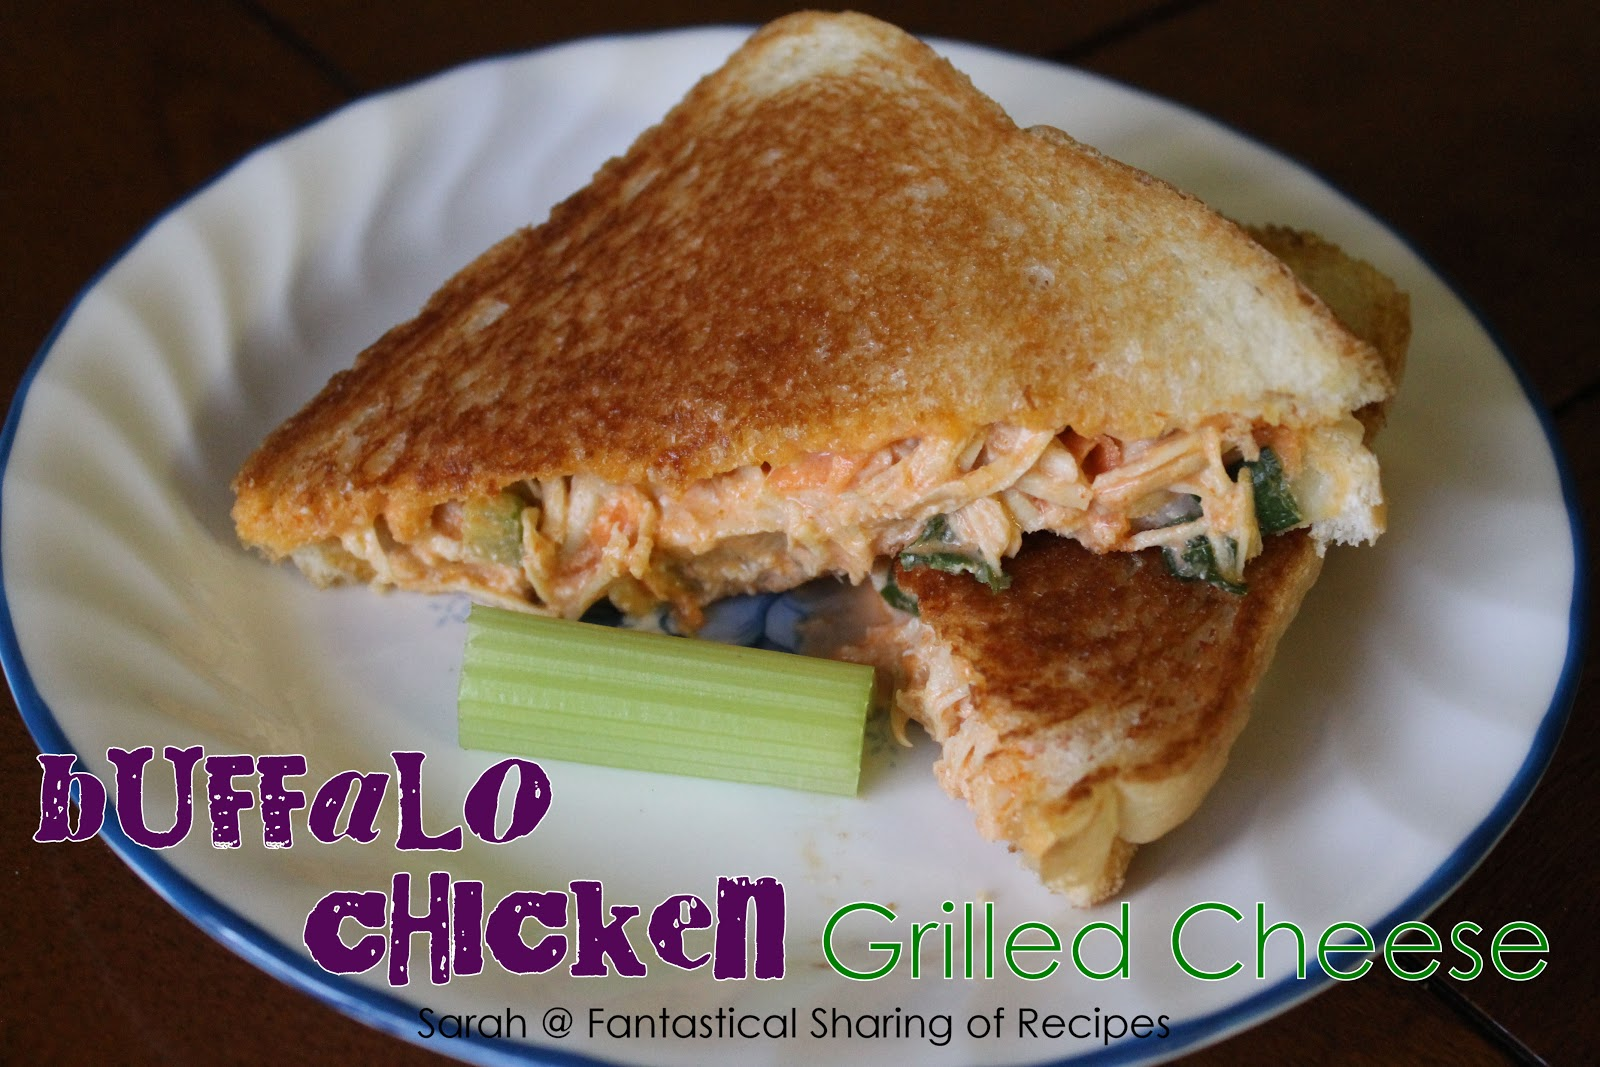 ... Sharing of Recipes: CCC: Buffalo Chicken Grilled Cheese Sandwich